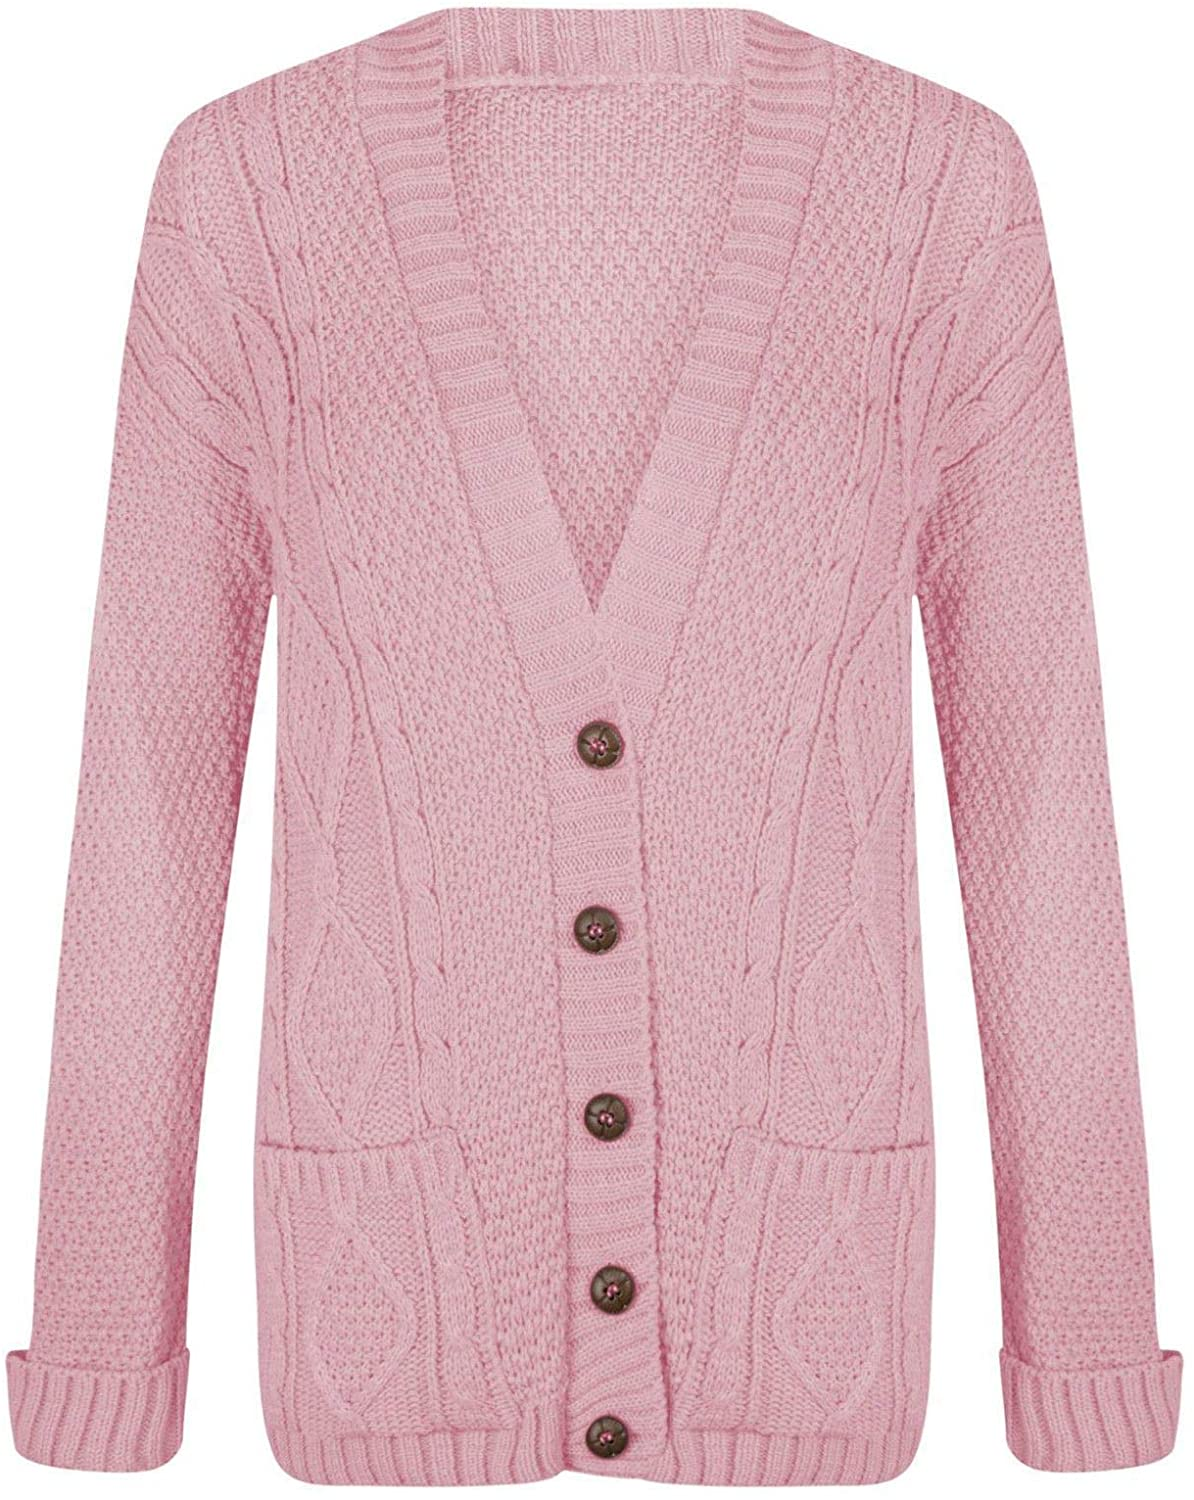 Purple Hanger Women's Long Sleeve Cable Knit Knitted Boyfriend Cardigan 8-10 Baby Pink